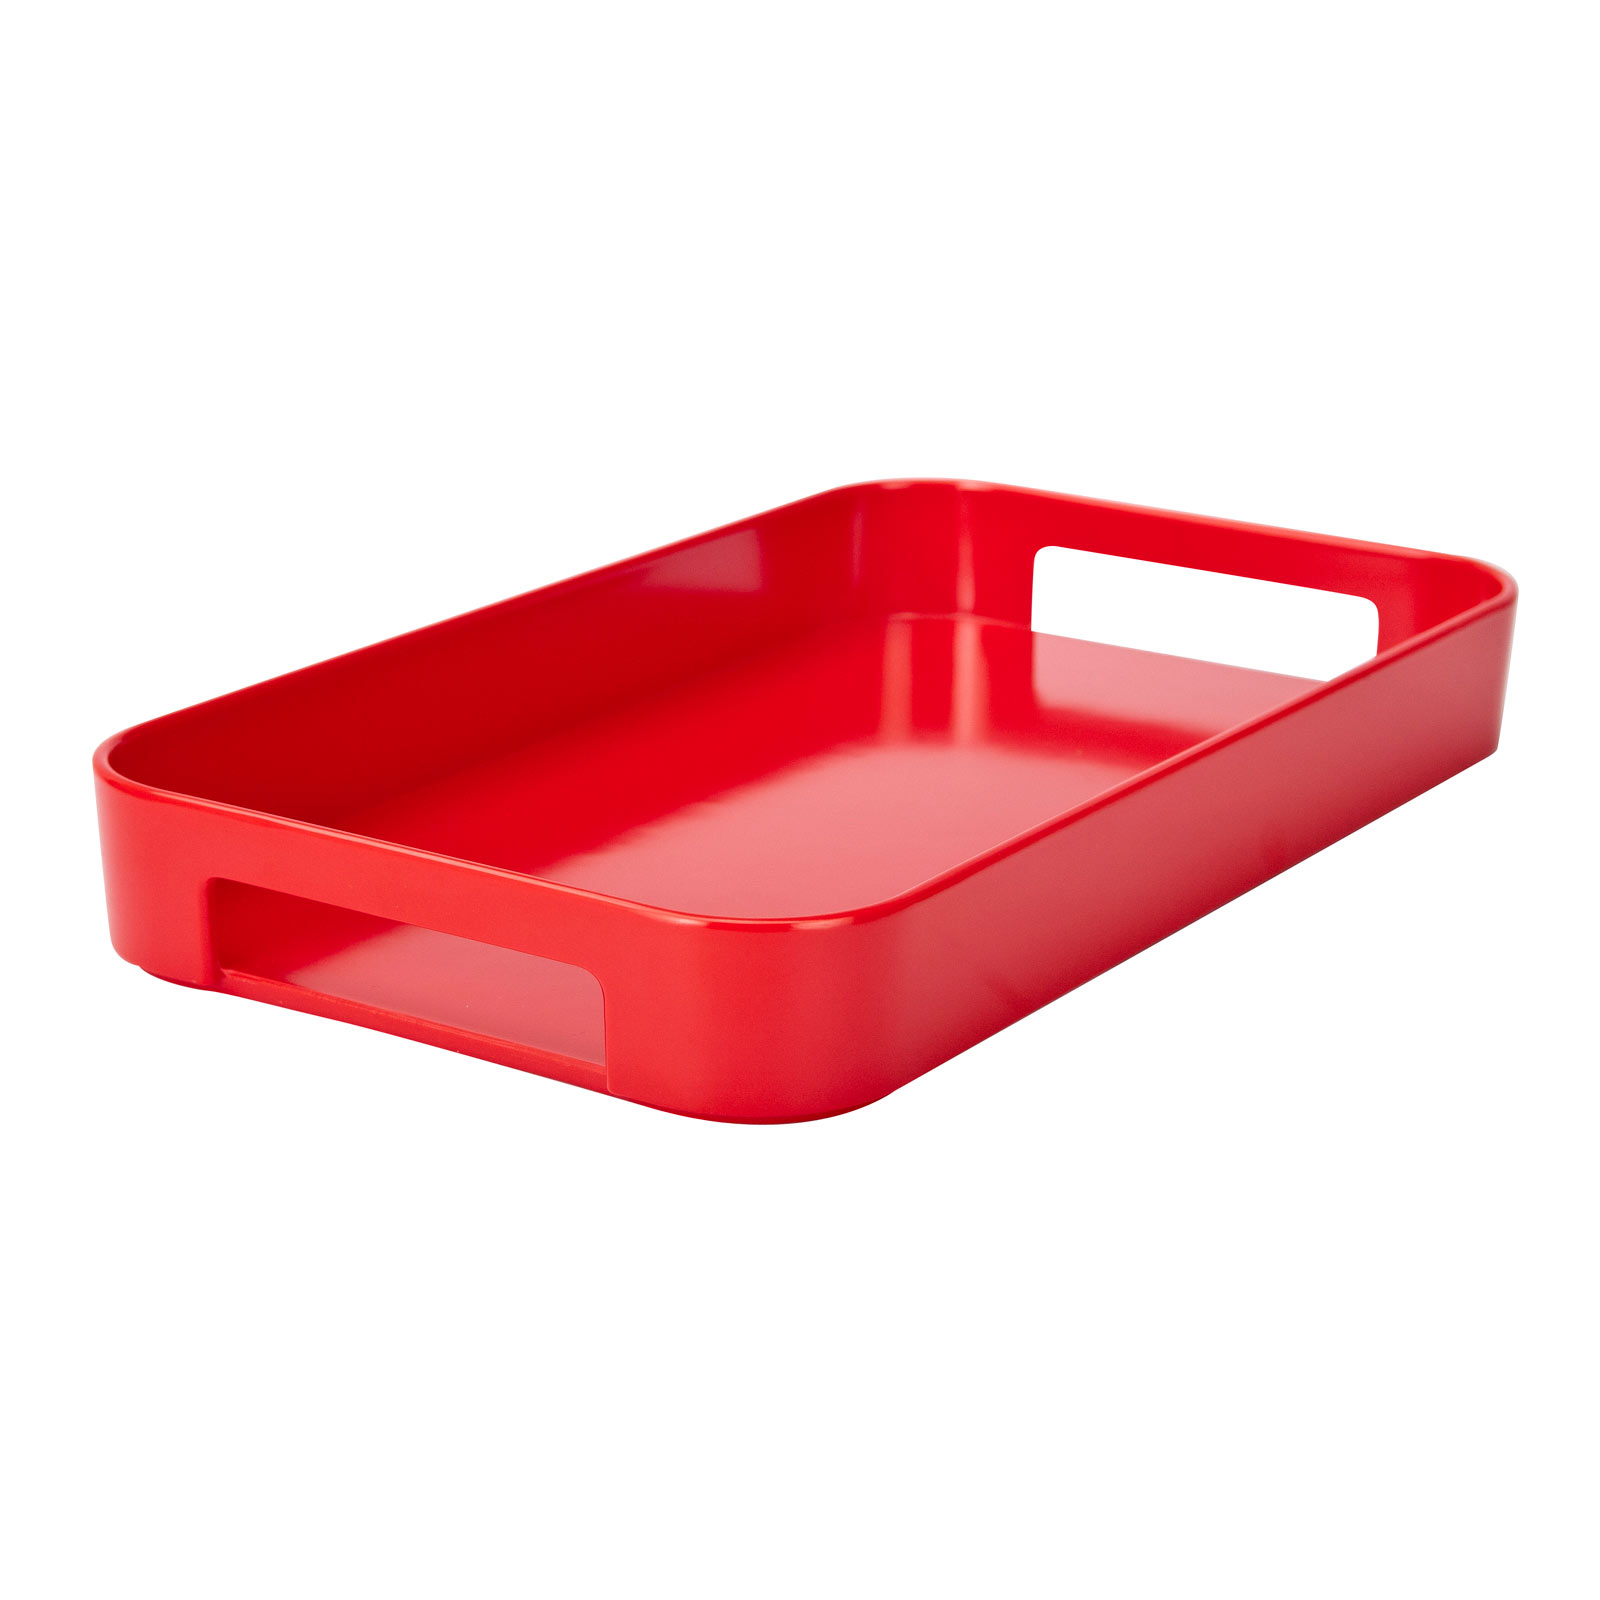 Gallery Serving Tray, Red slideshow image 1